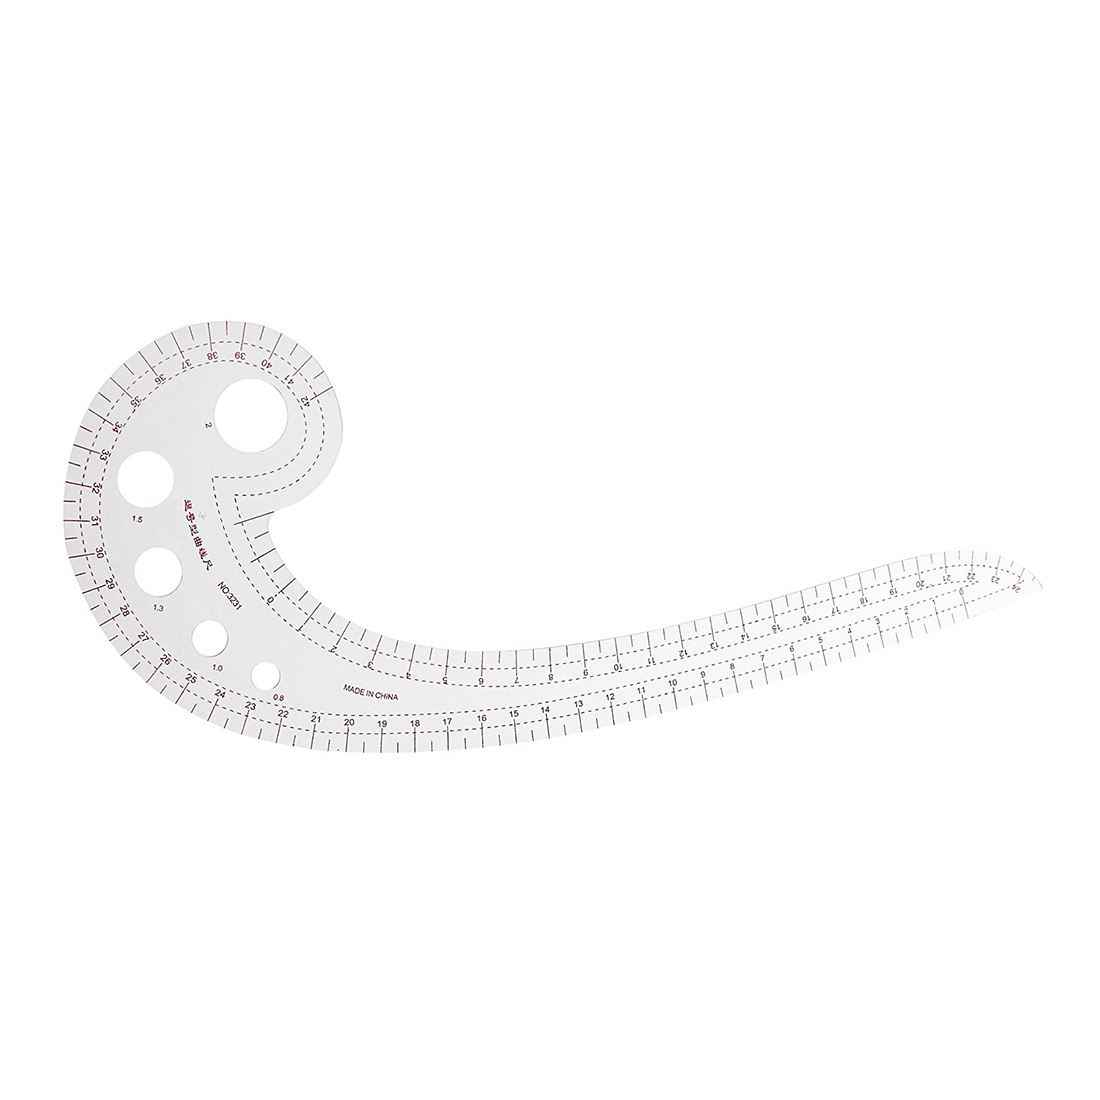 Comma Shaped 42cm Drawing Template Tool French Curve Ruler Clear